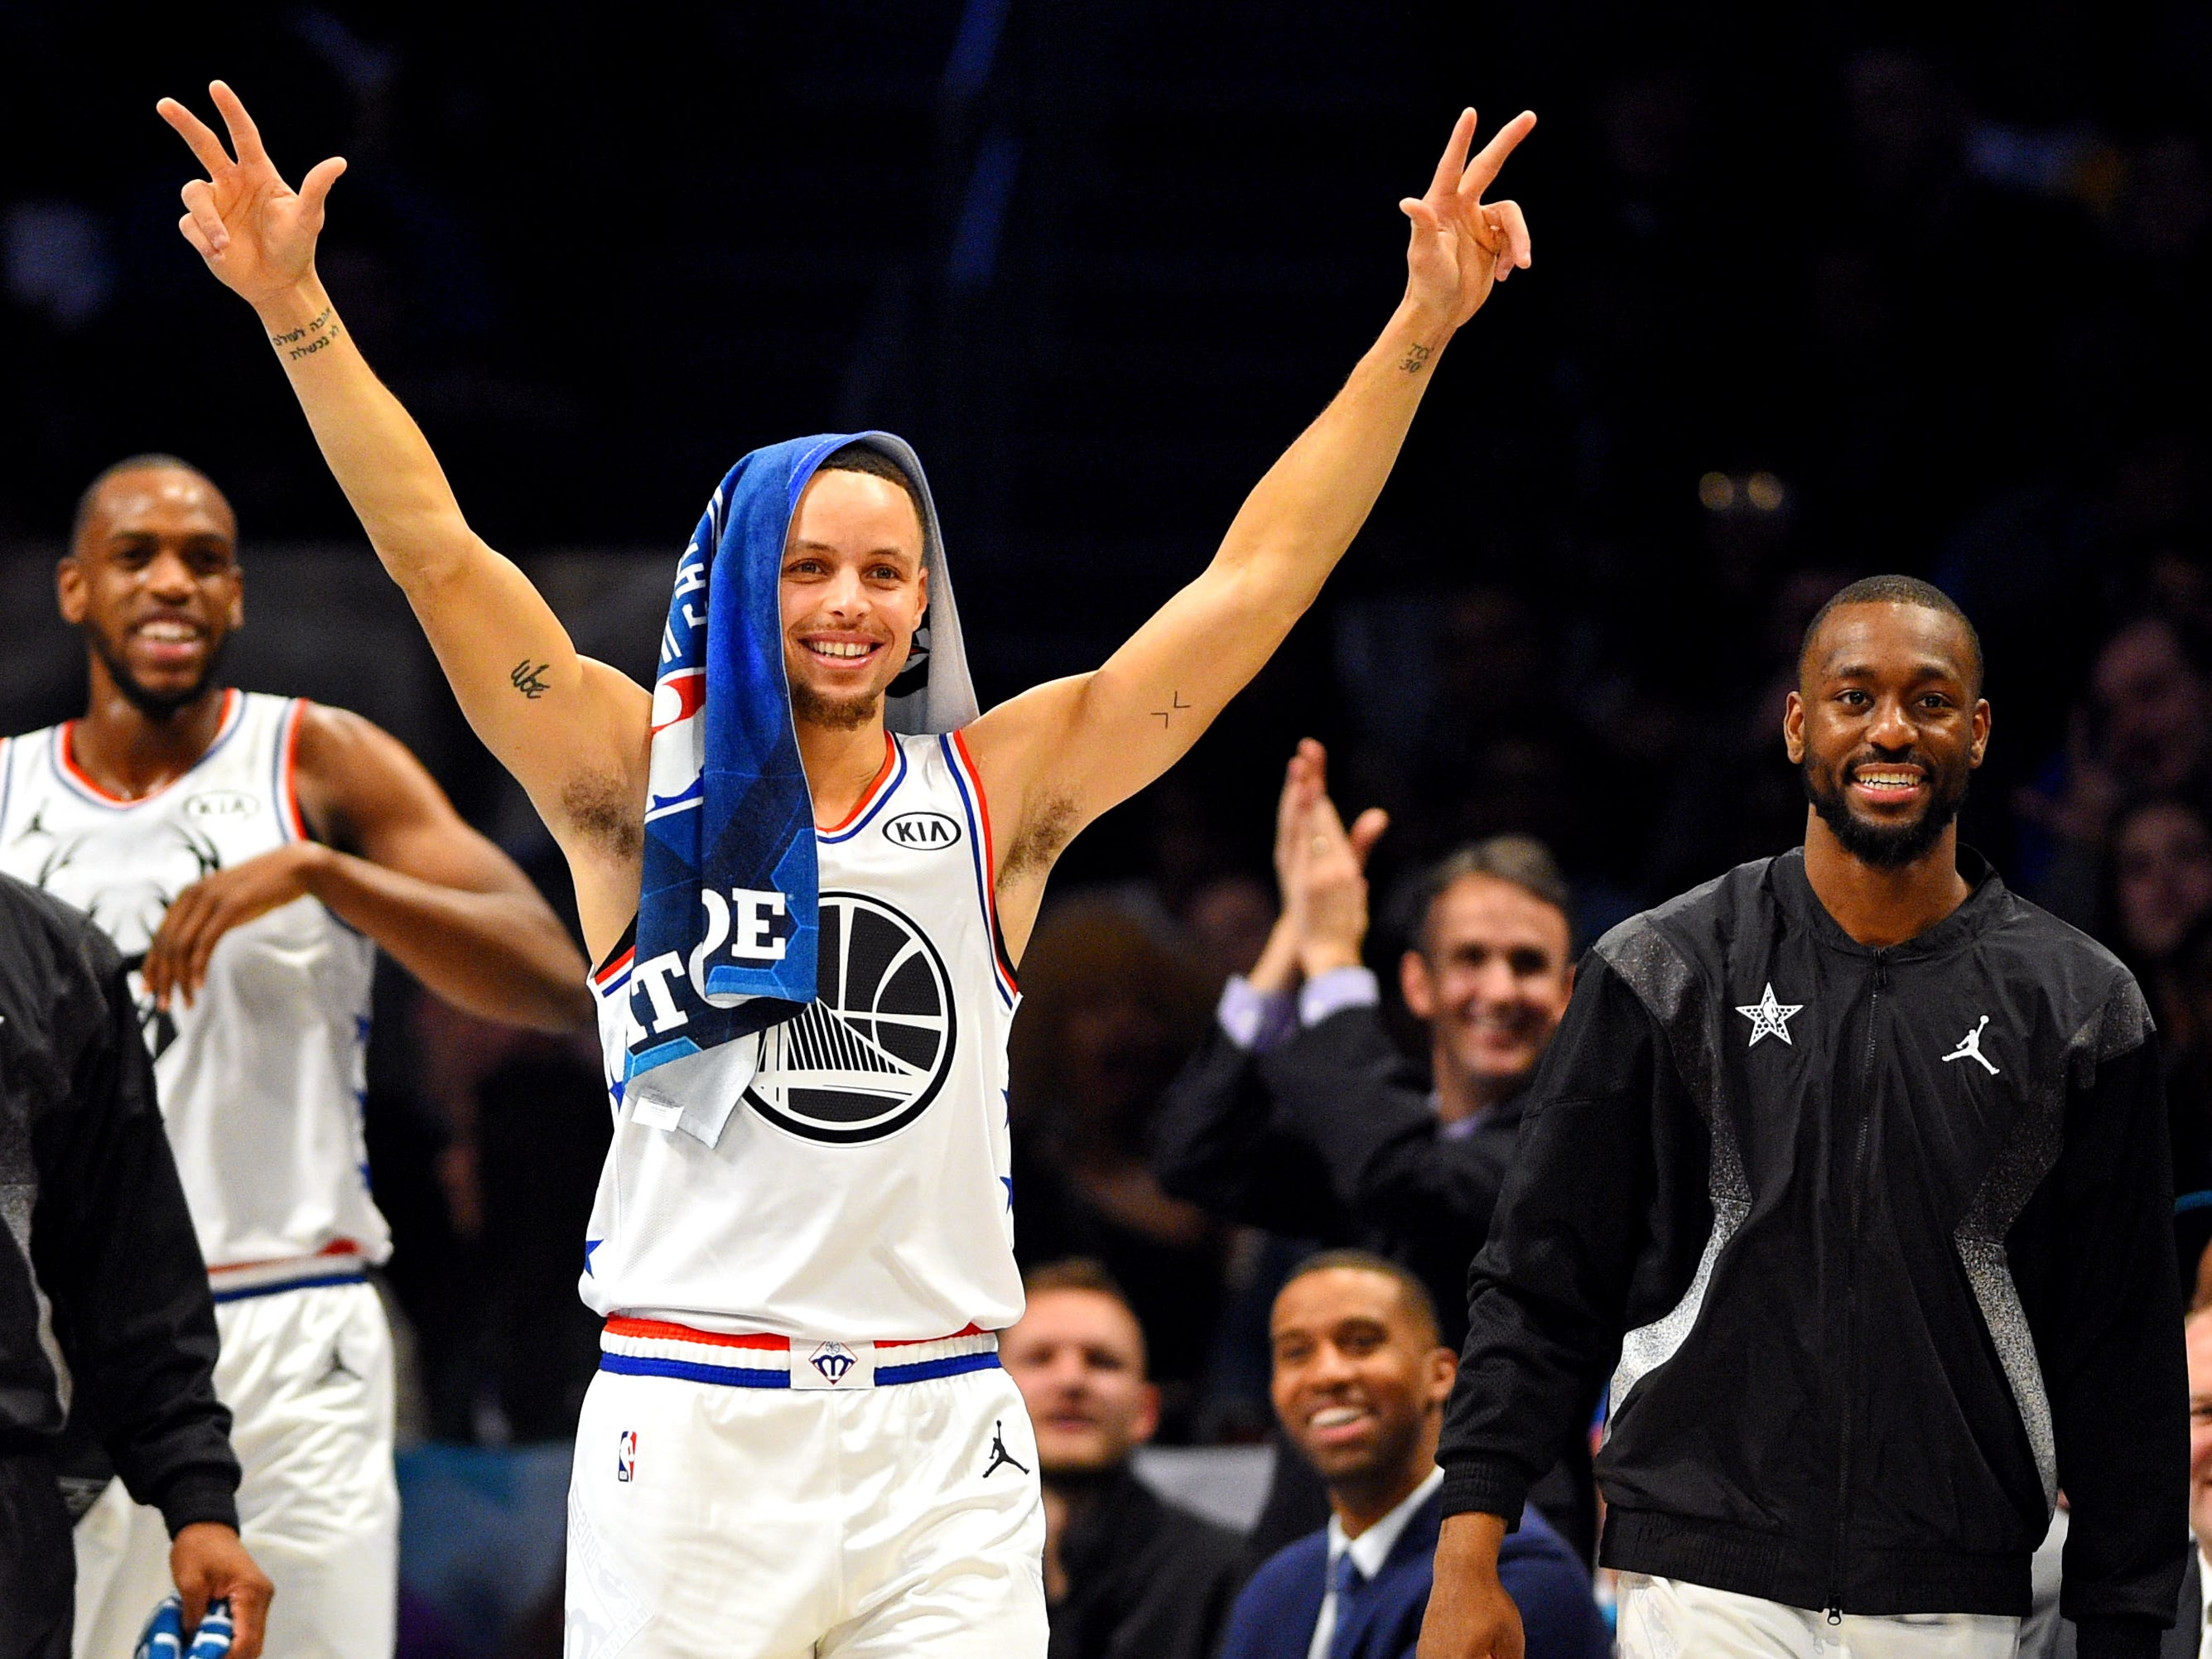 Stephen Curry reacts during the All-Star Game.